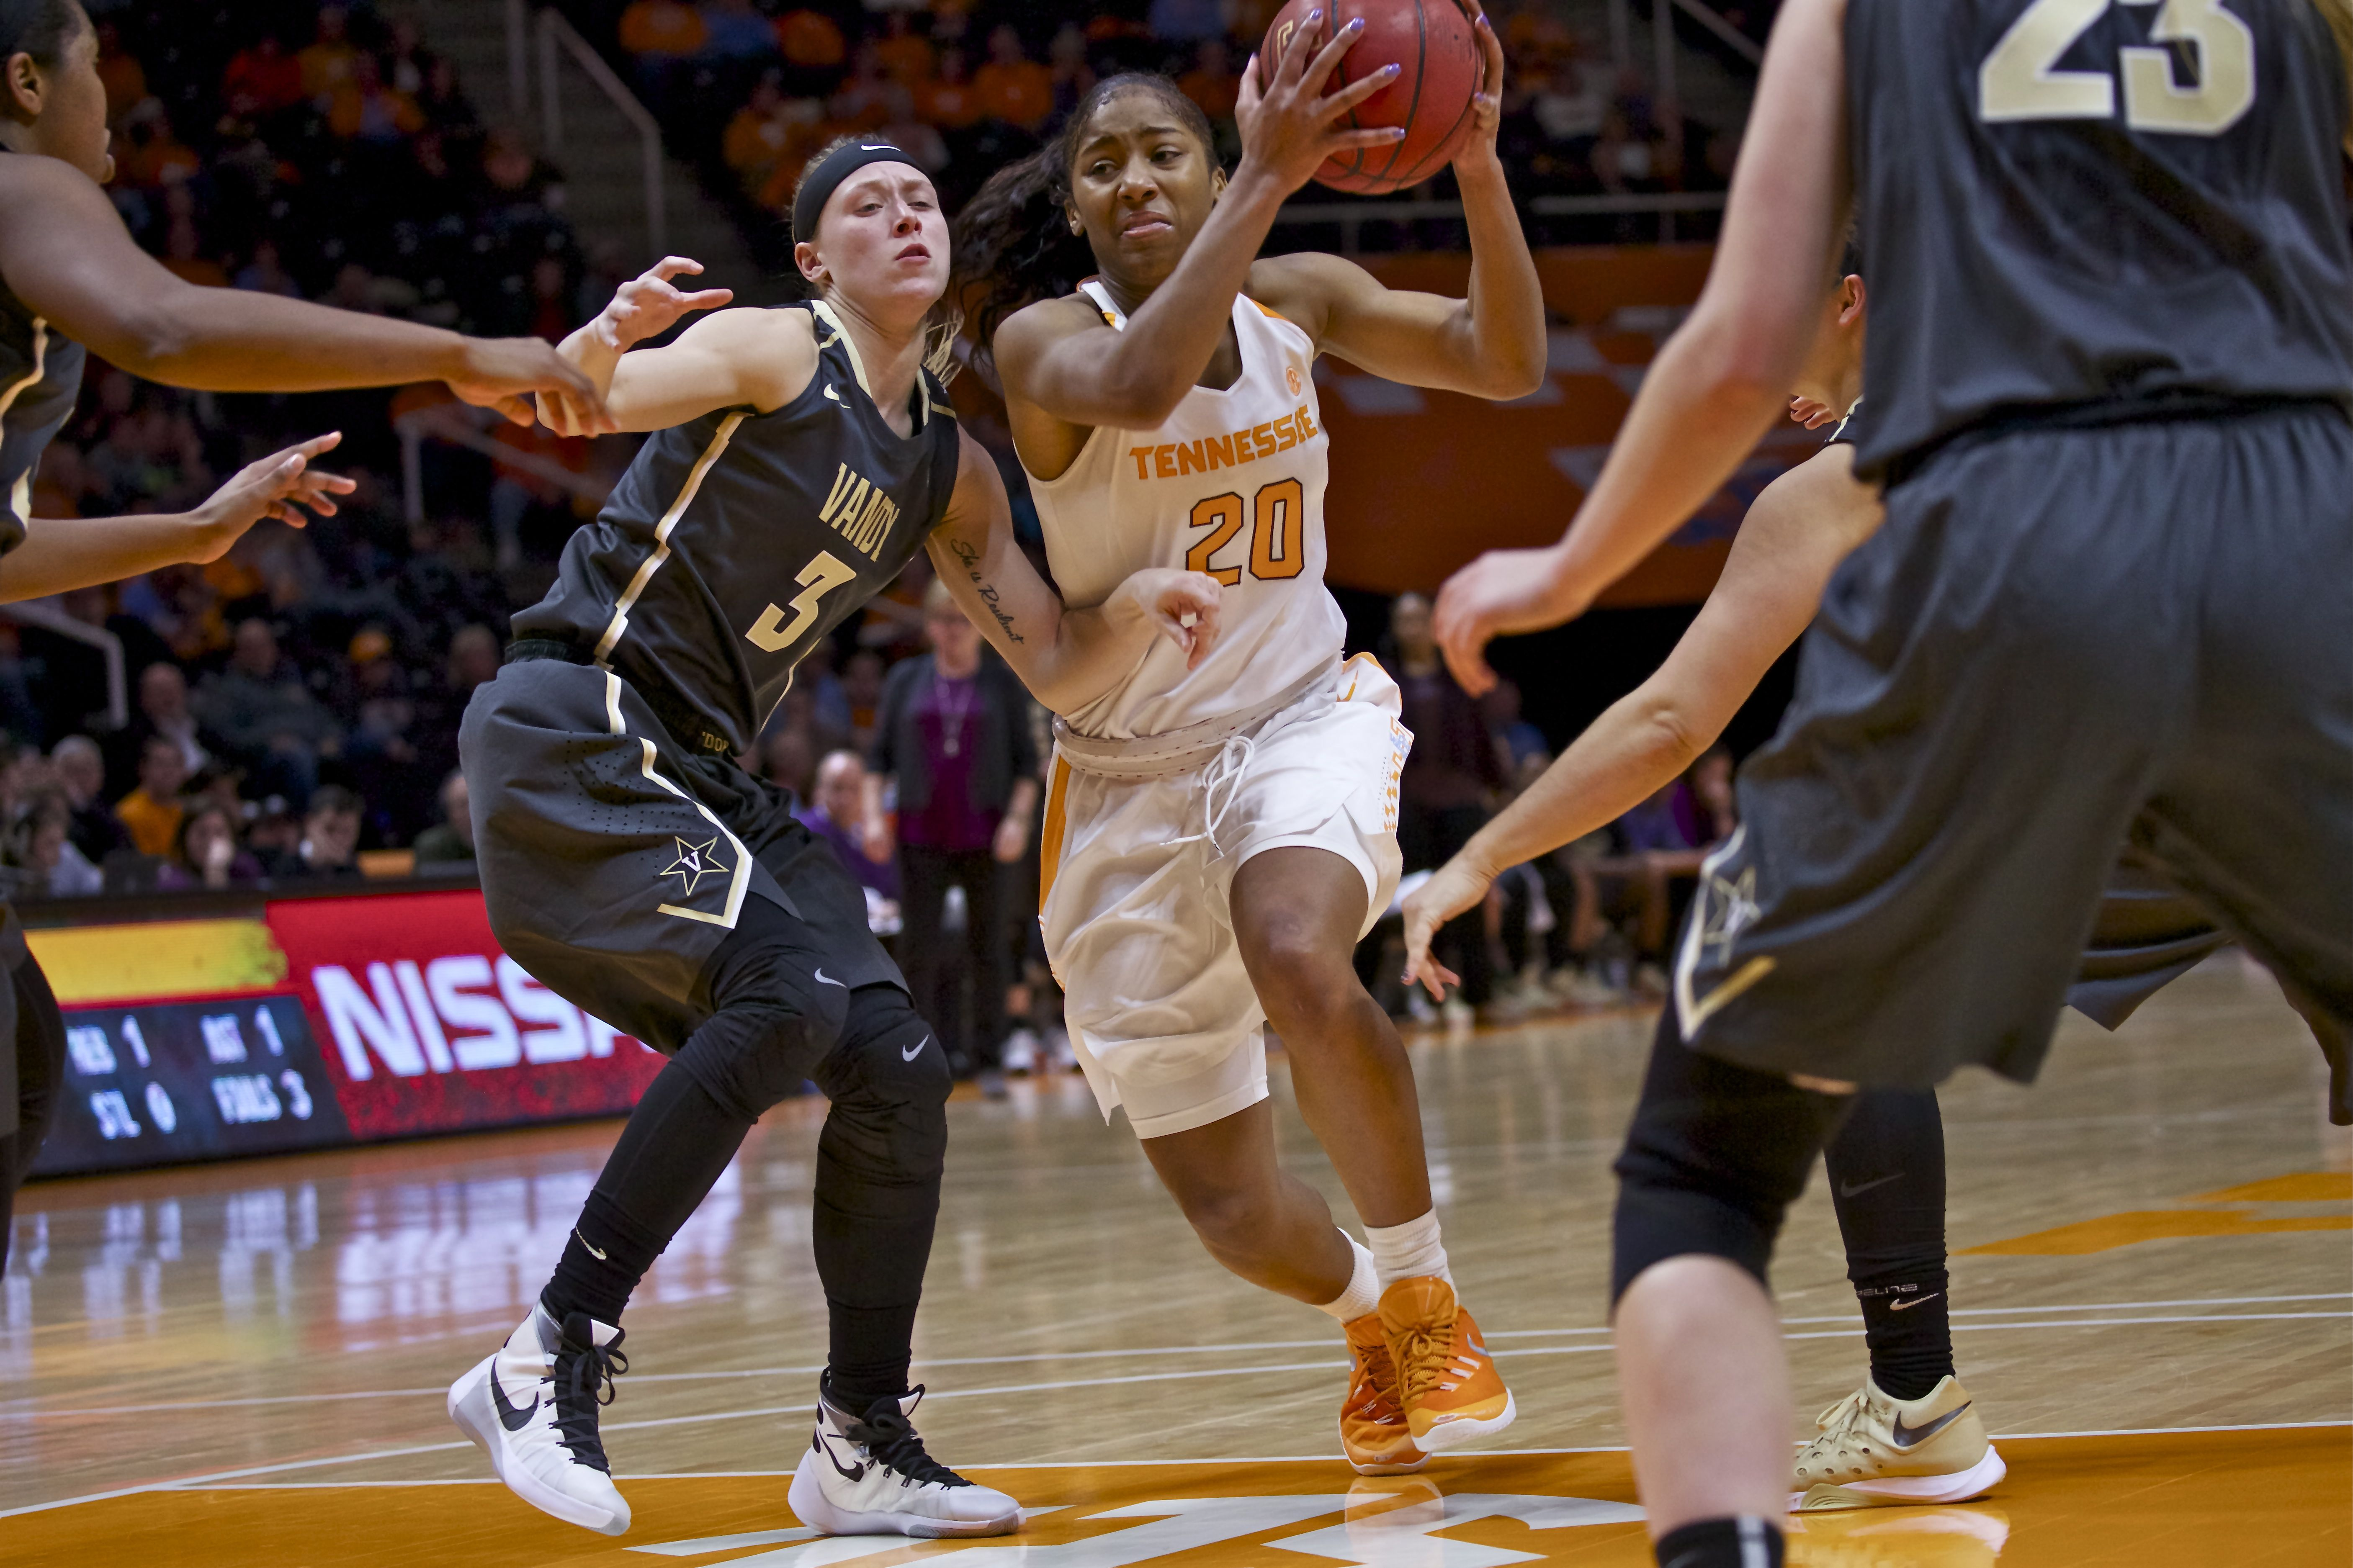 Photo Gallery: Lady Vols vs. Vanderbilt Action 1-21-16